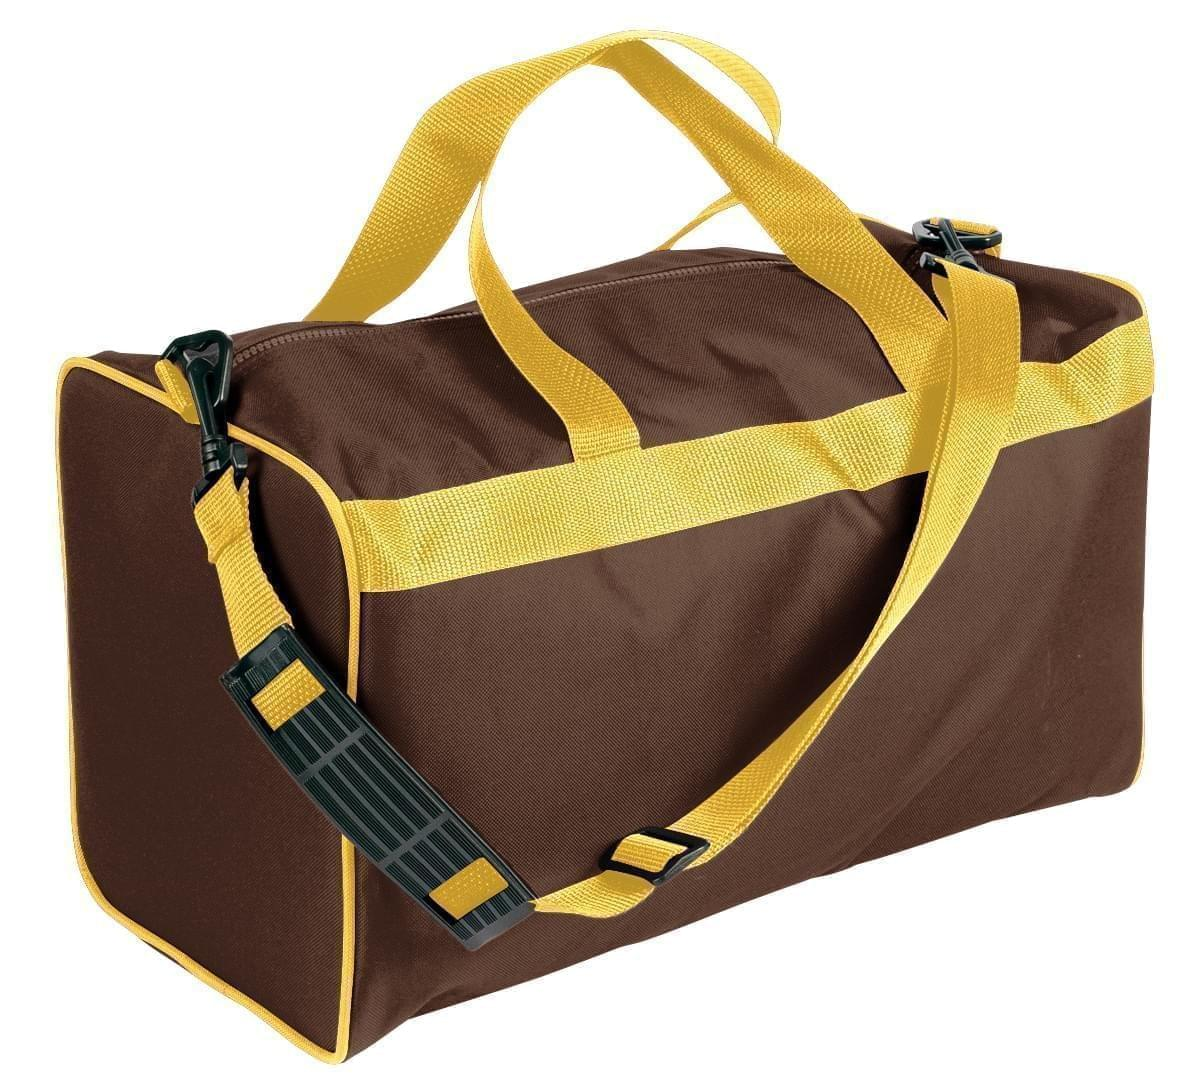 USA Made Nylon Poly Weekend Duffles, Brown-Gold, WLKX31AAP5